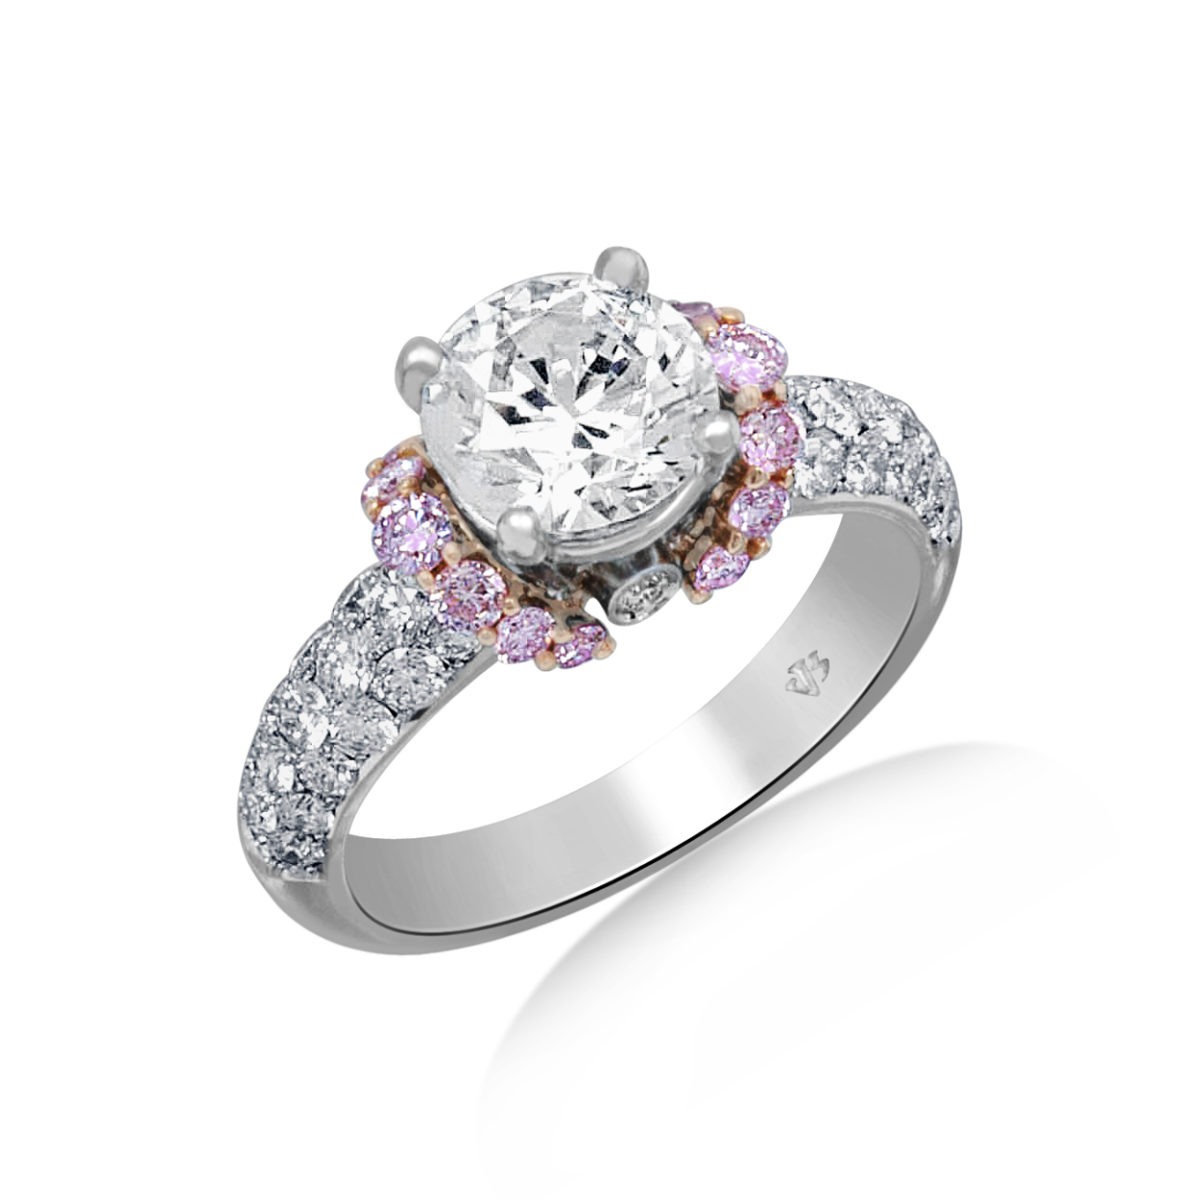 Jack-Kelge-Pink-Diamond-Engagement-Ring-